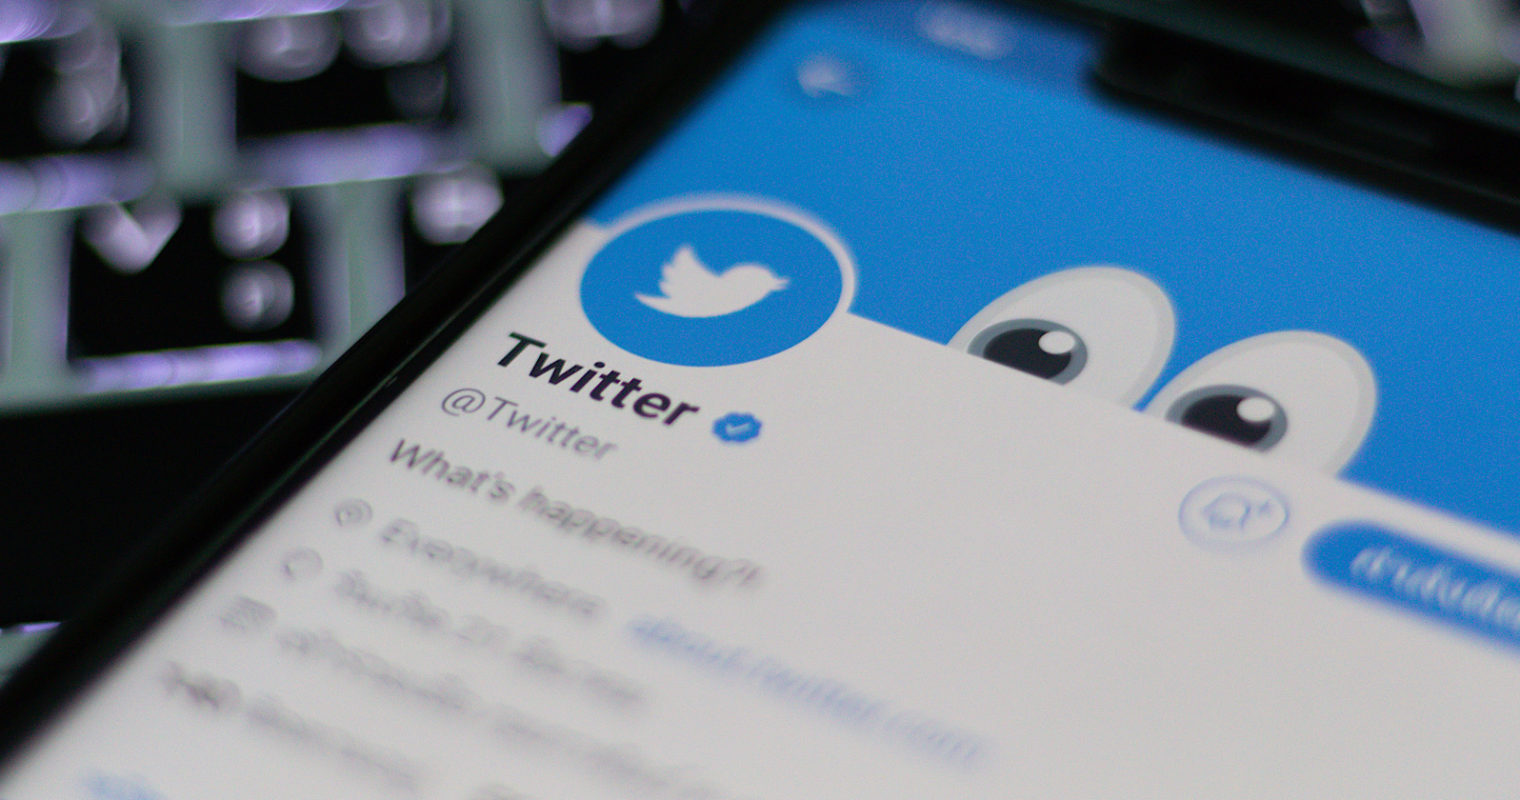 Twitter Begins Showing More Ads to Some Users